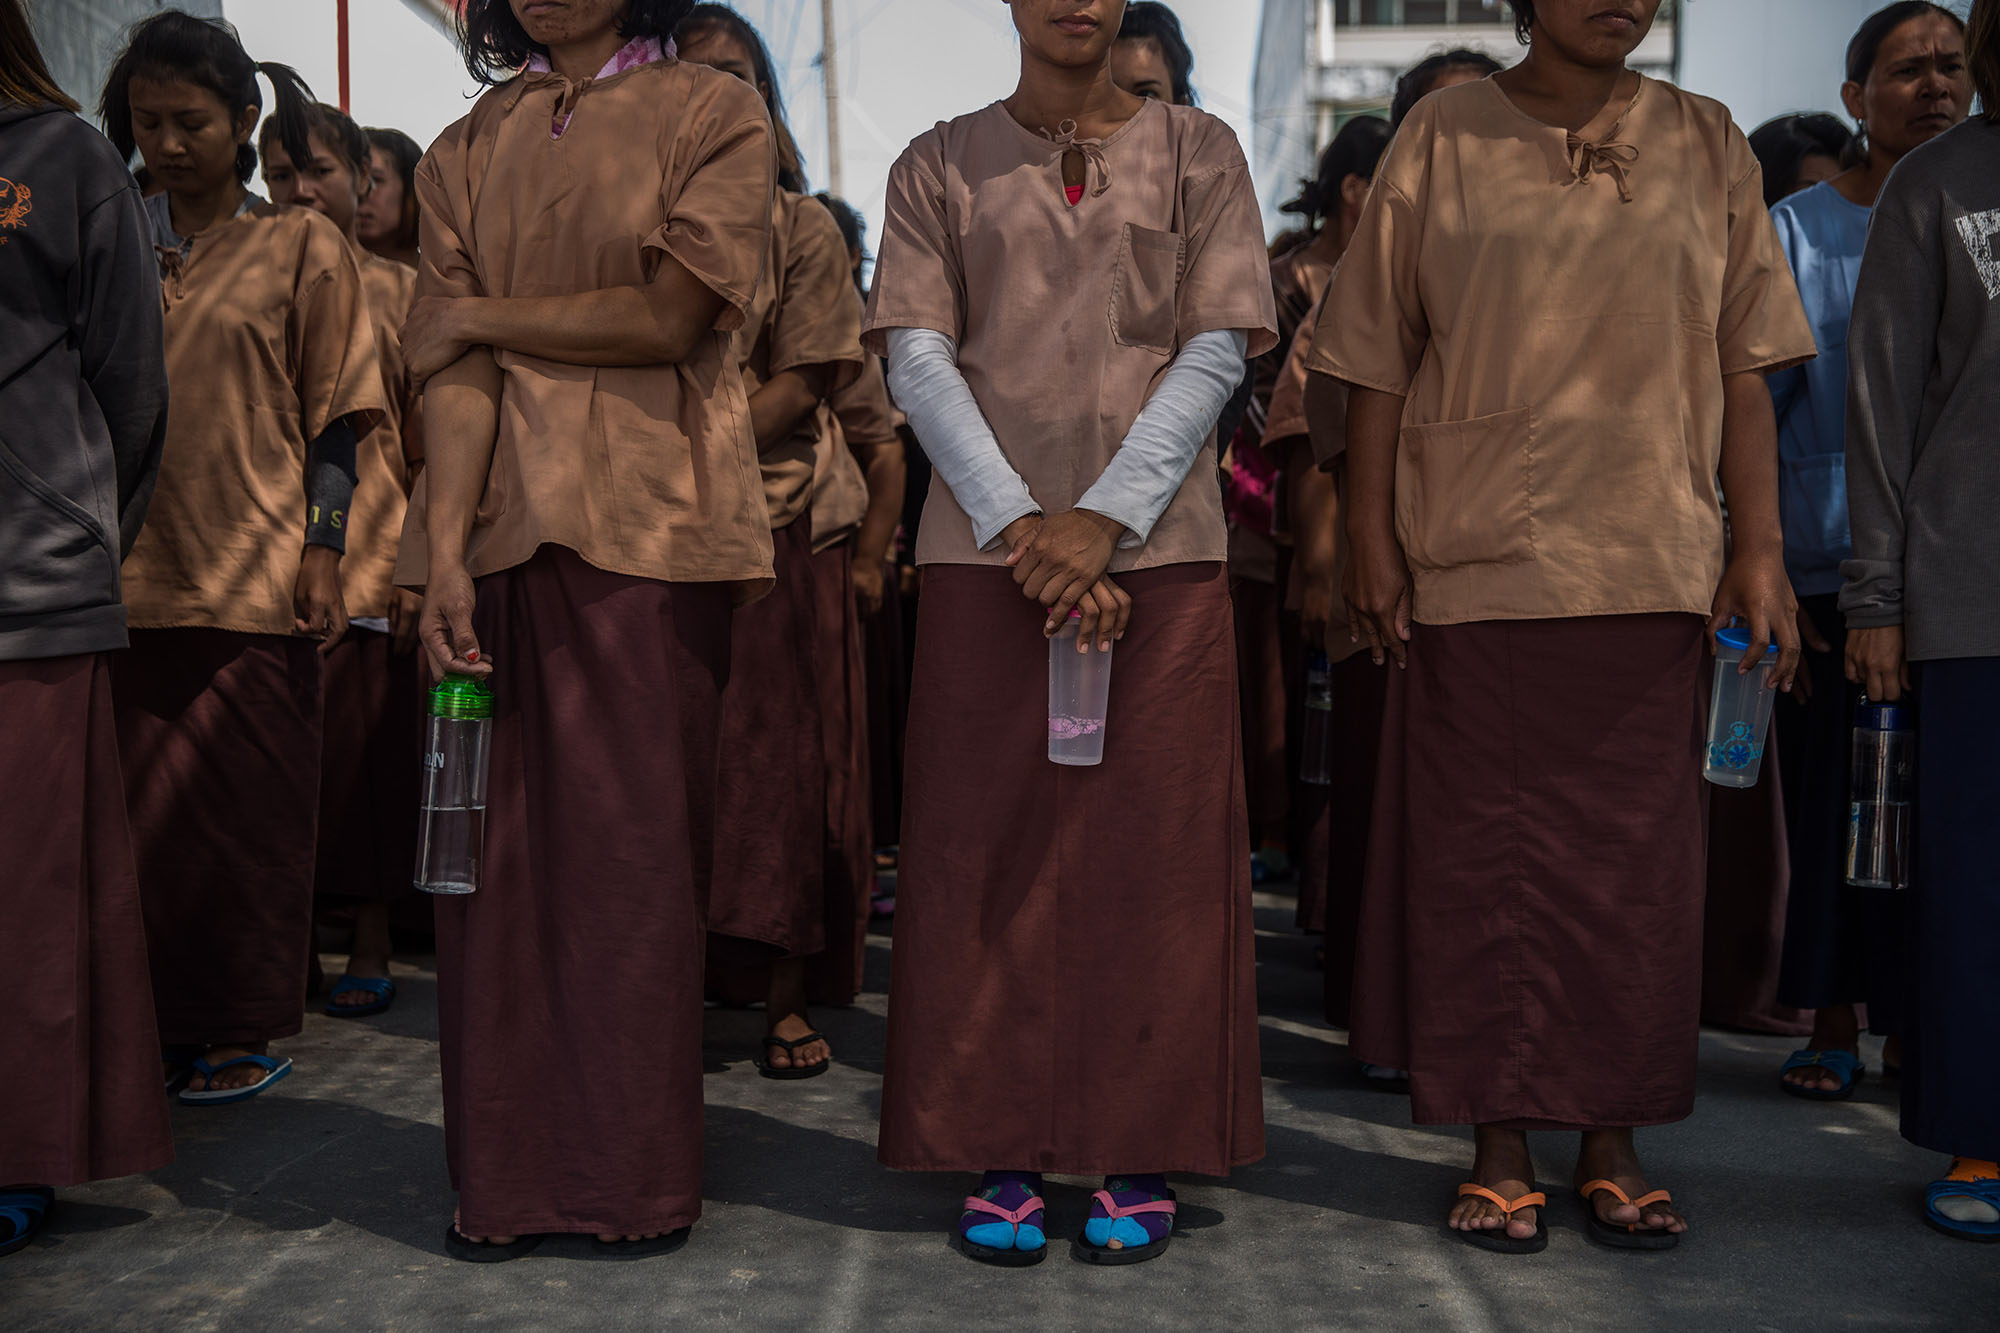 Woman stand in neat rows in a prison in Thailand.